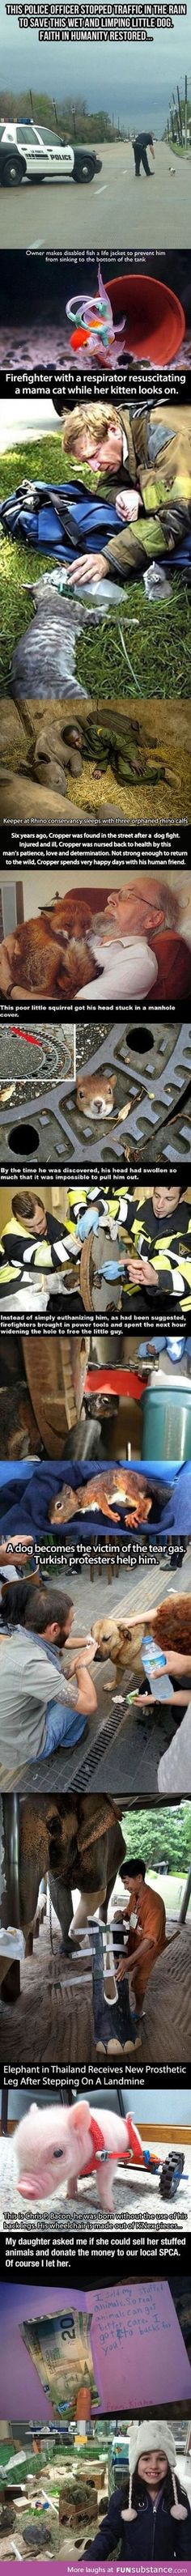 People Helping Animals Faith in humanity restored Animals And Pets, Baby Animals, Funny Animals, Cute Animals, Amor Animal, Faith In Humanity Restored, Tier Fotos, Funny Cute, Funny Pics